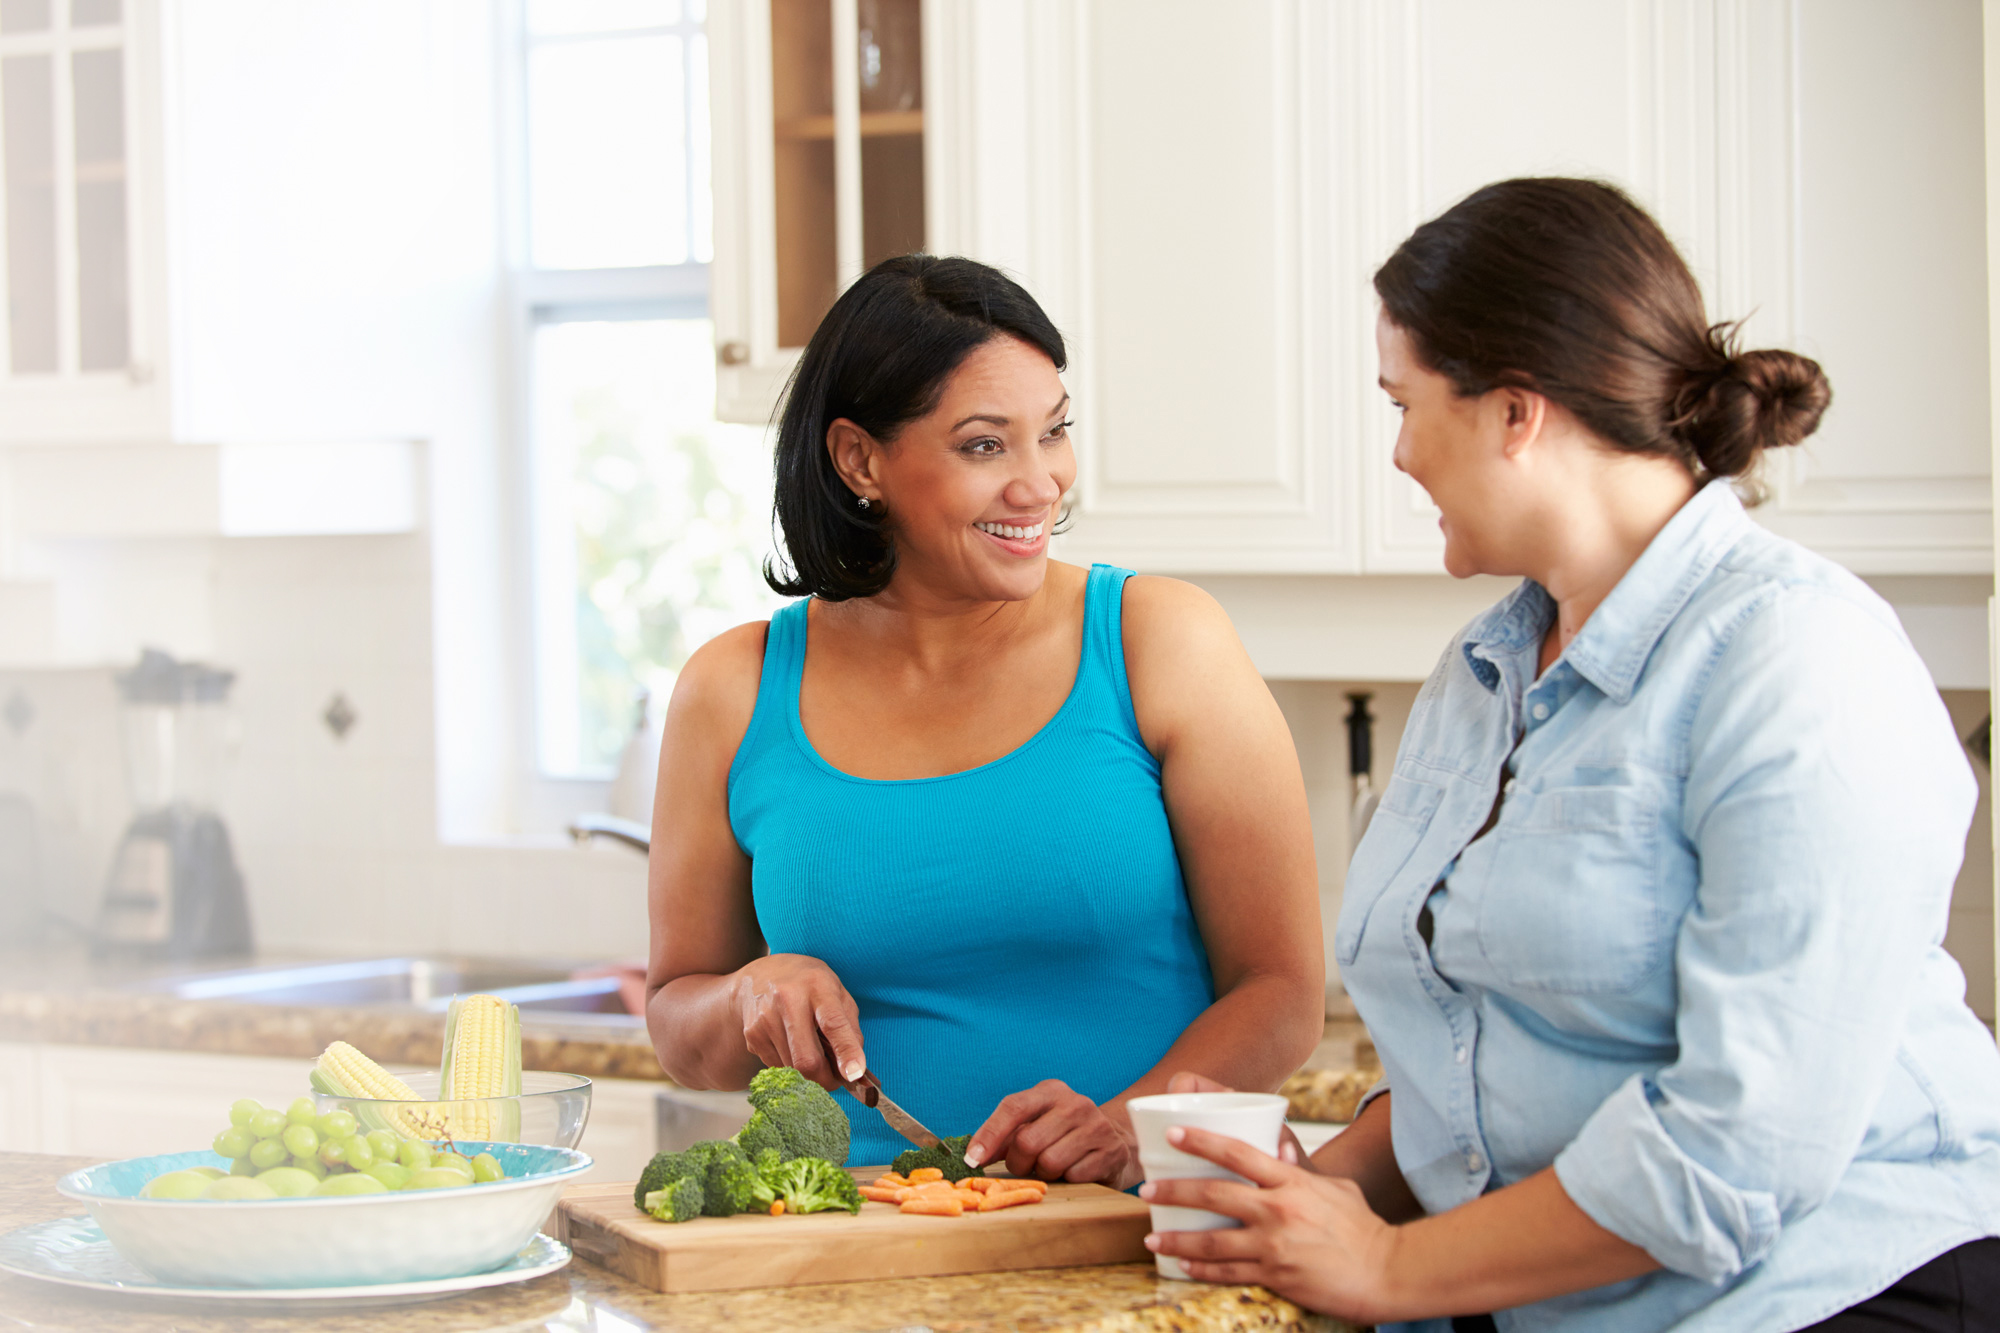 Family Cooking Healthy with DIY HCG Diet